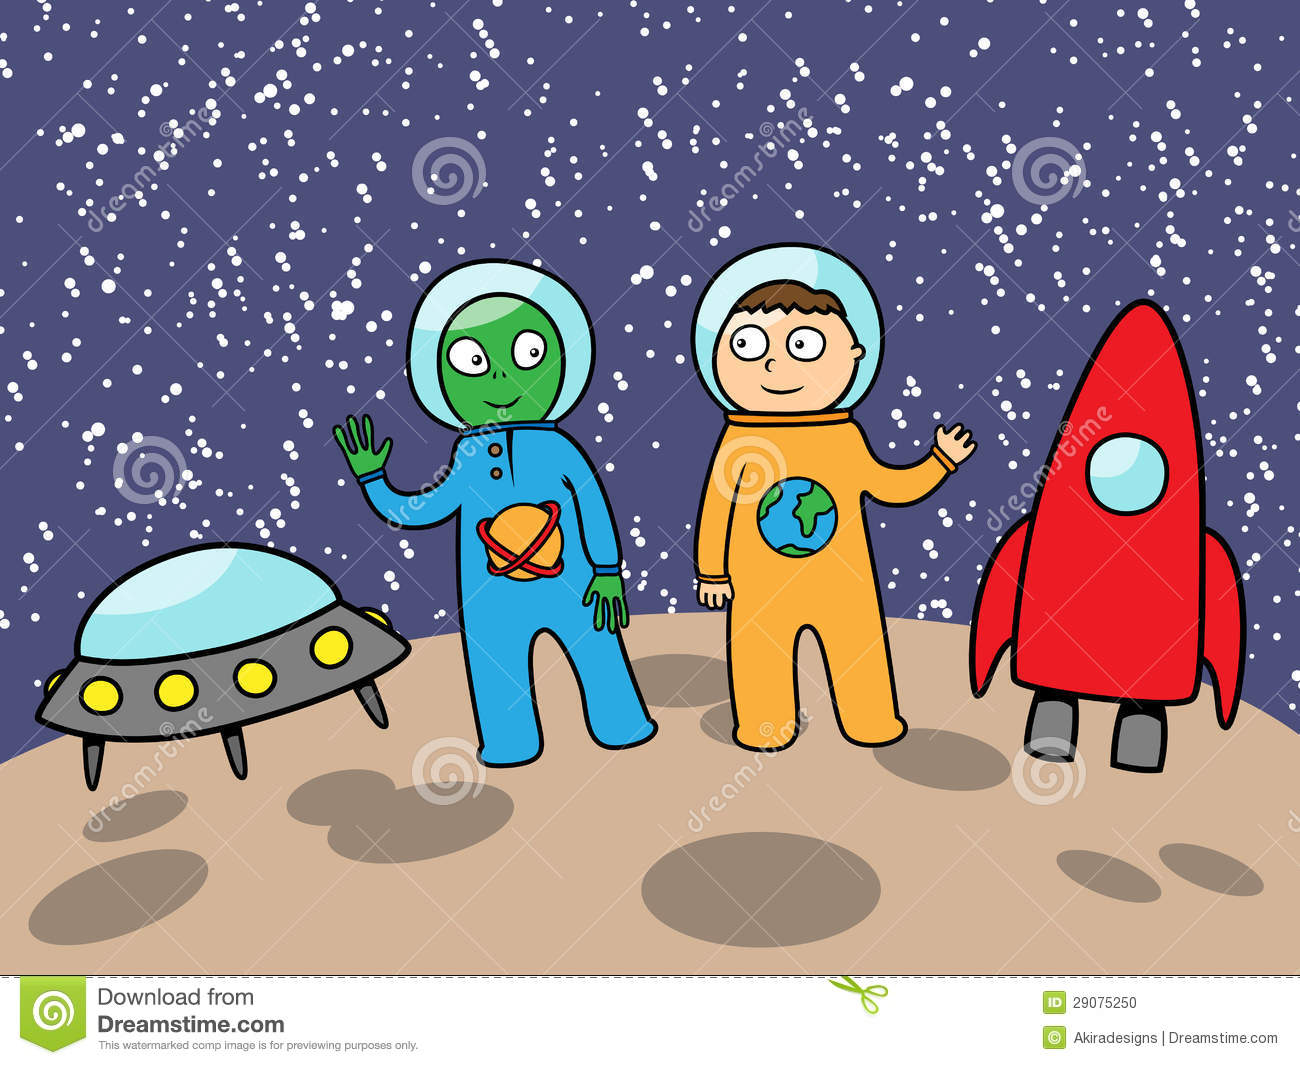 Cartoon vector illustration of cute alien and astronaut in space on